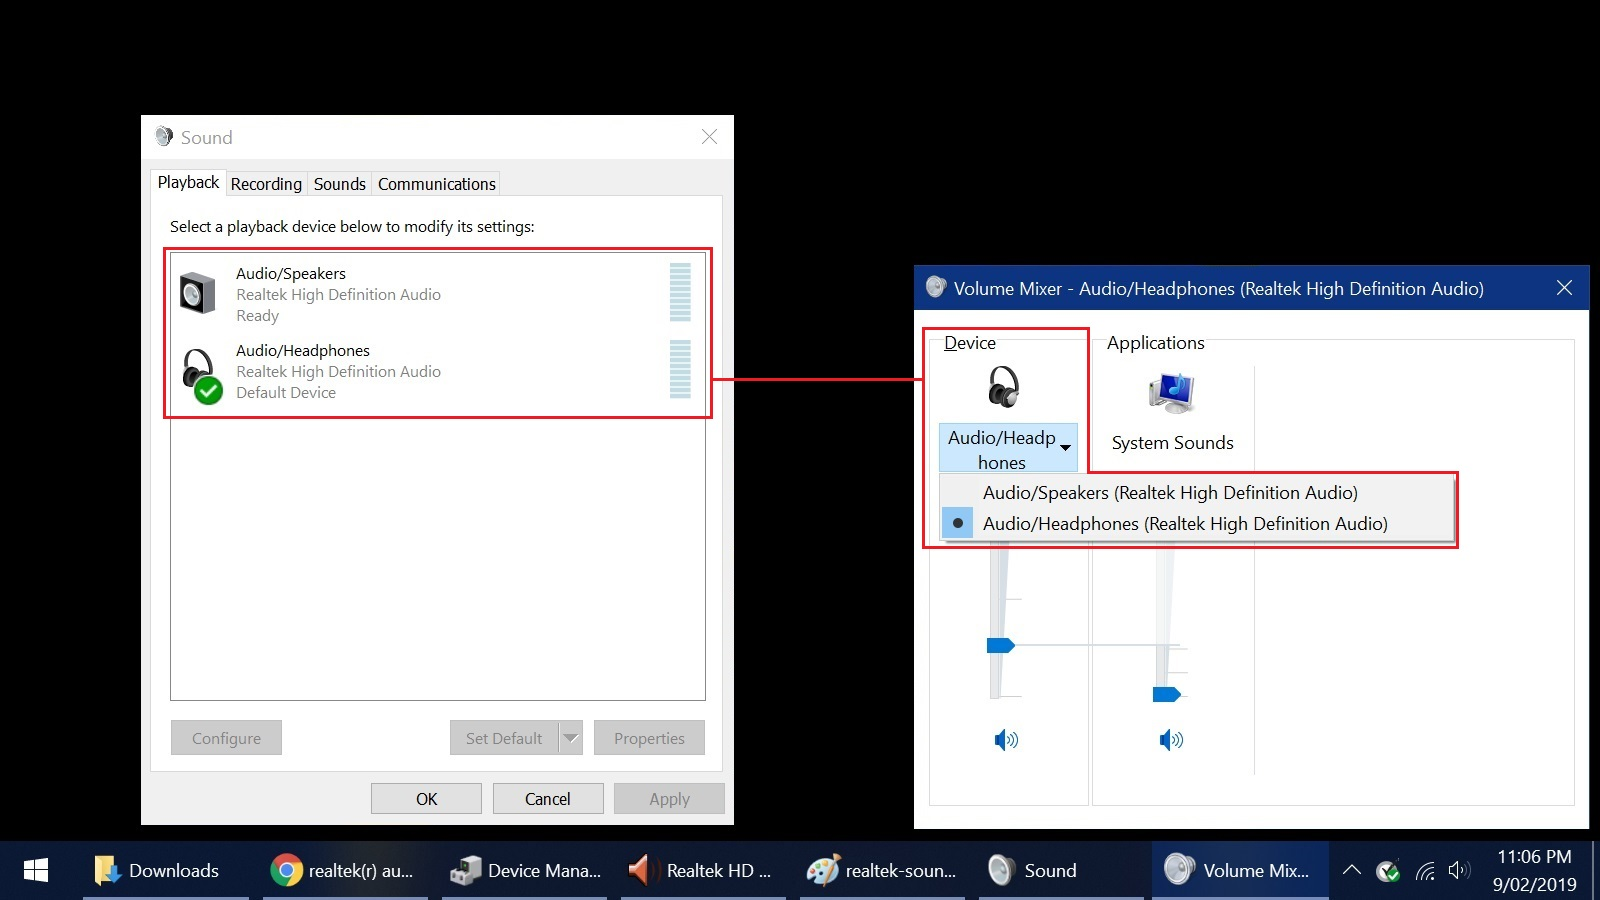 realtek high definition audio driver keeps installing